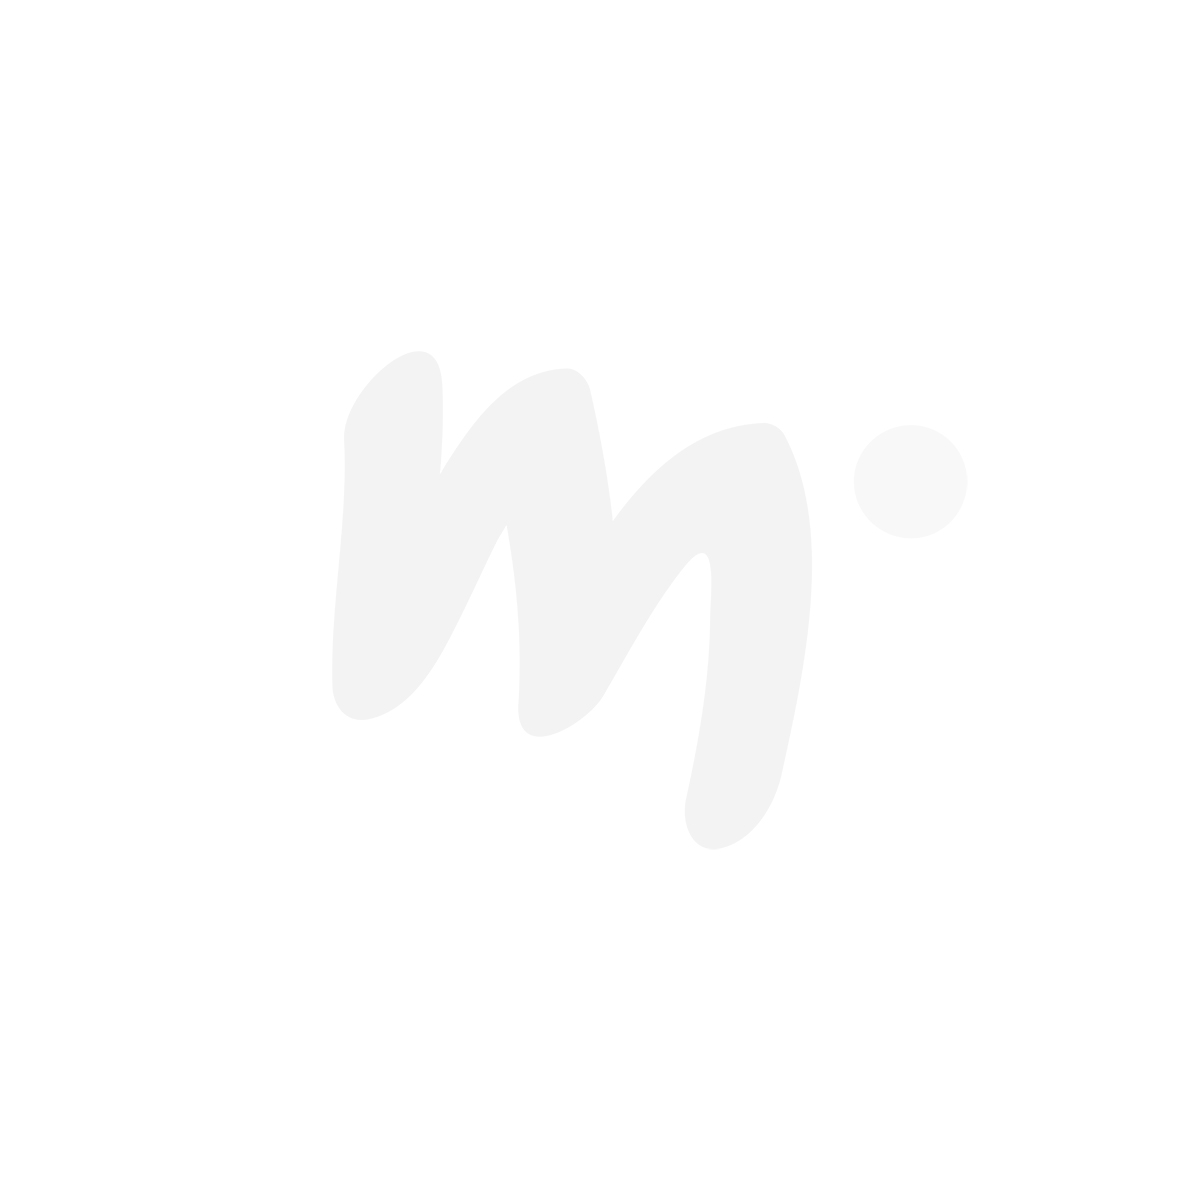 Moomin Tray Puzzle Set 20 & 40 Pieces